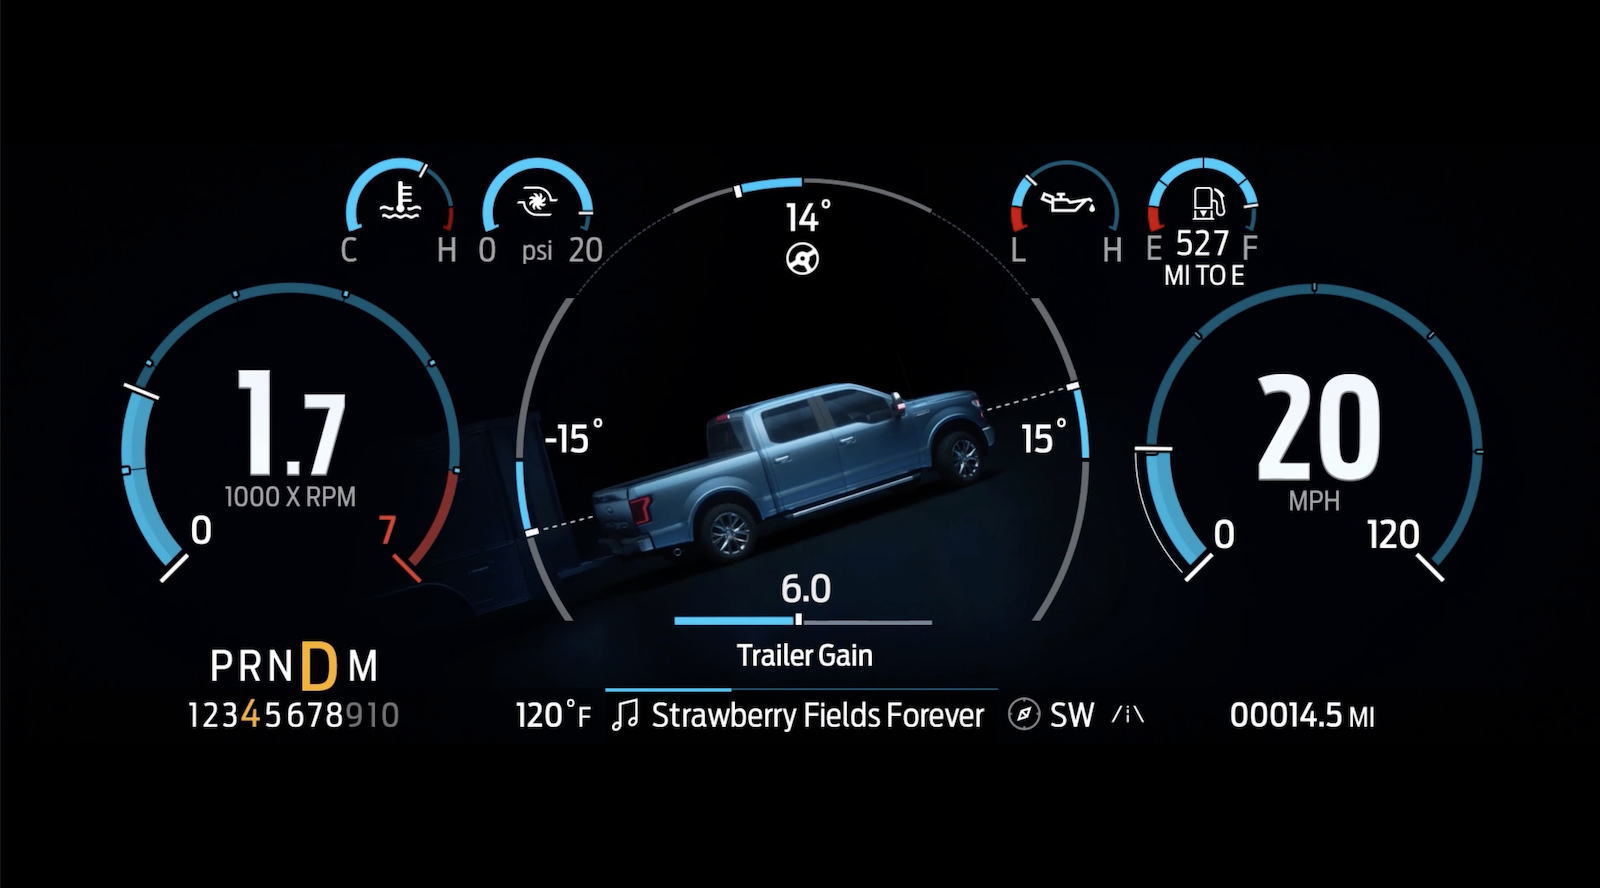 2021 Ford F-150 Digital Gauges Instrument Display 10.png